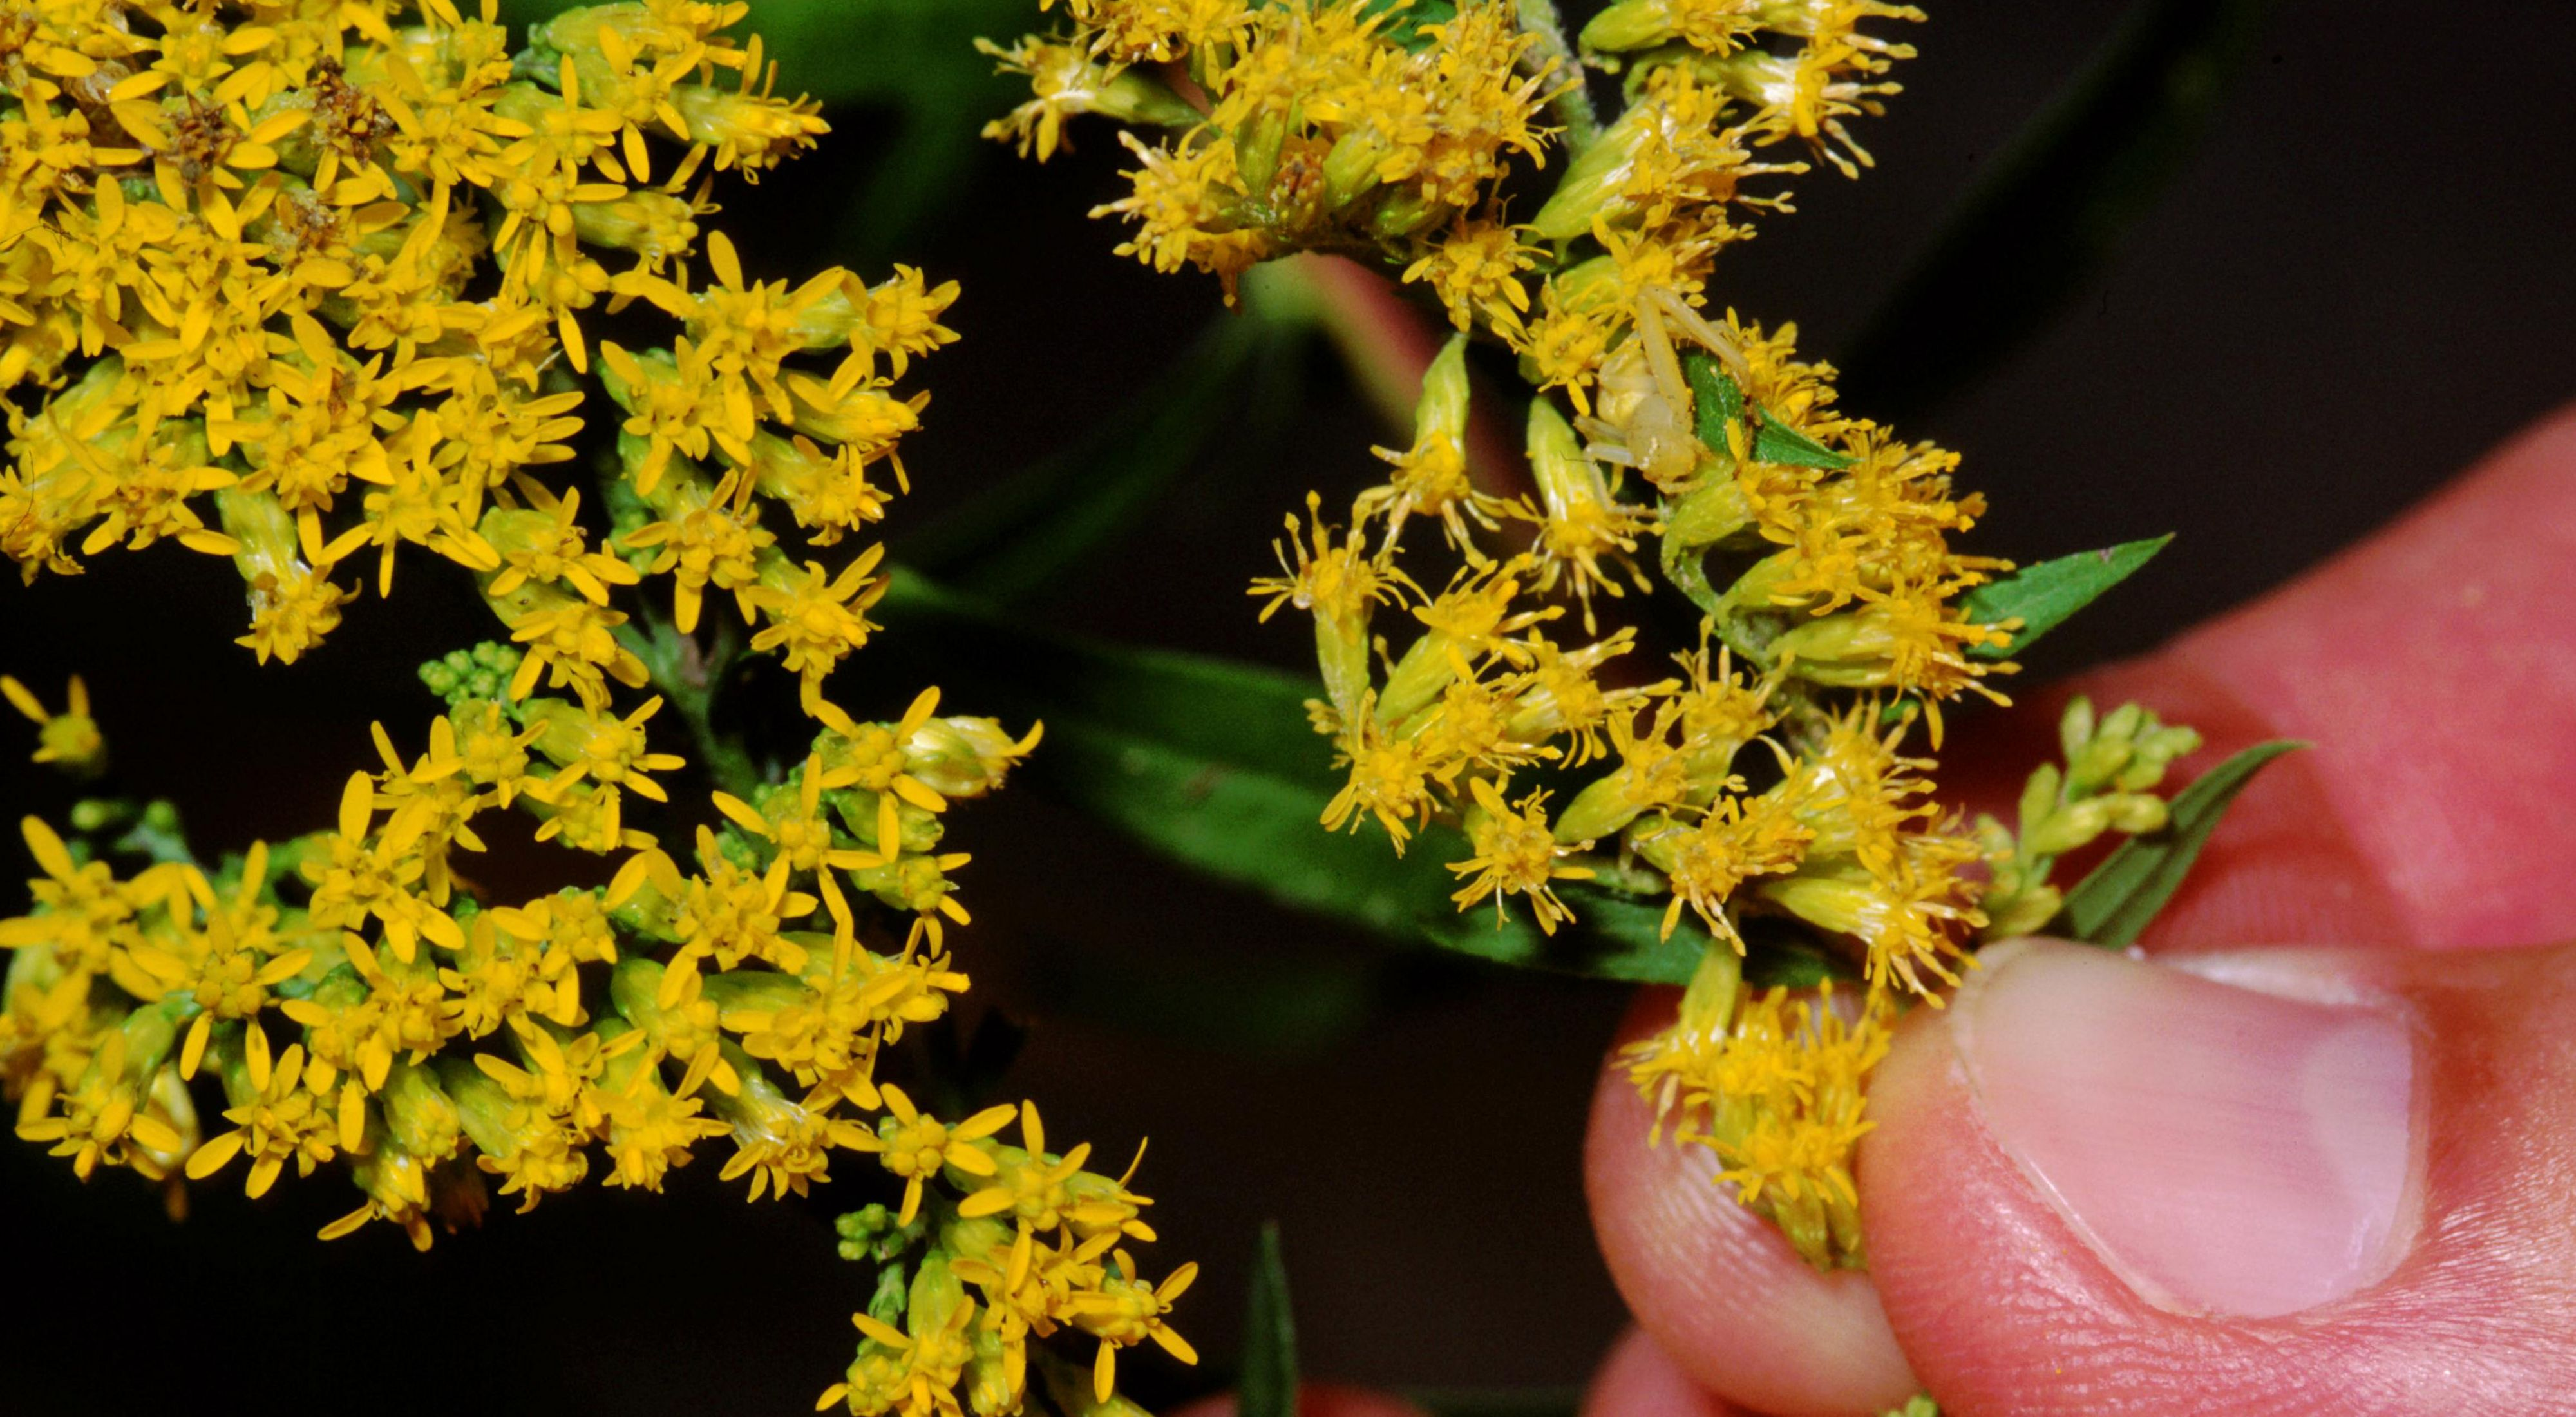 Close-up of slender plant with bright yellow clustered flowers.